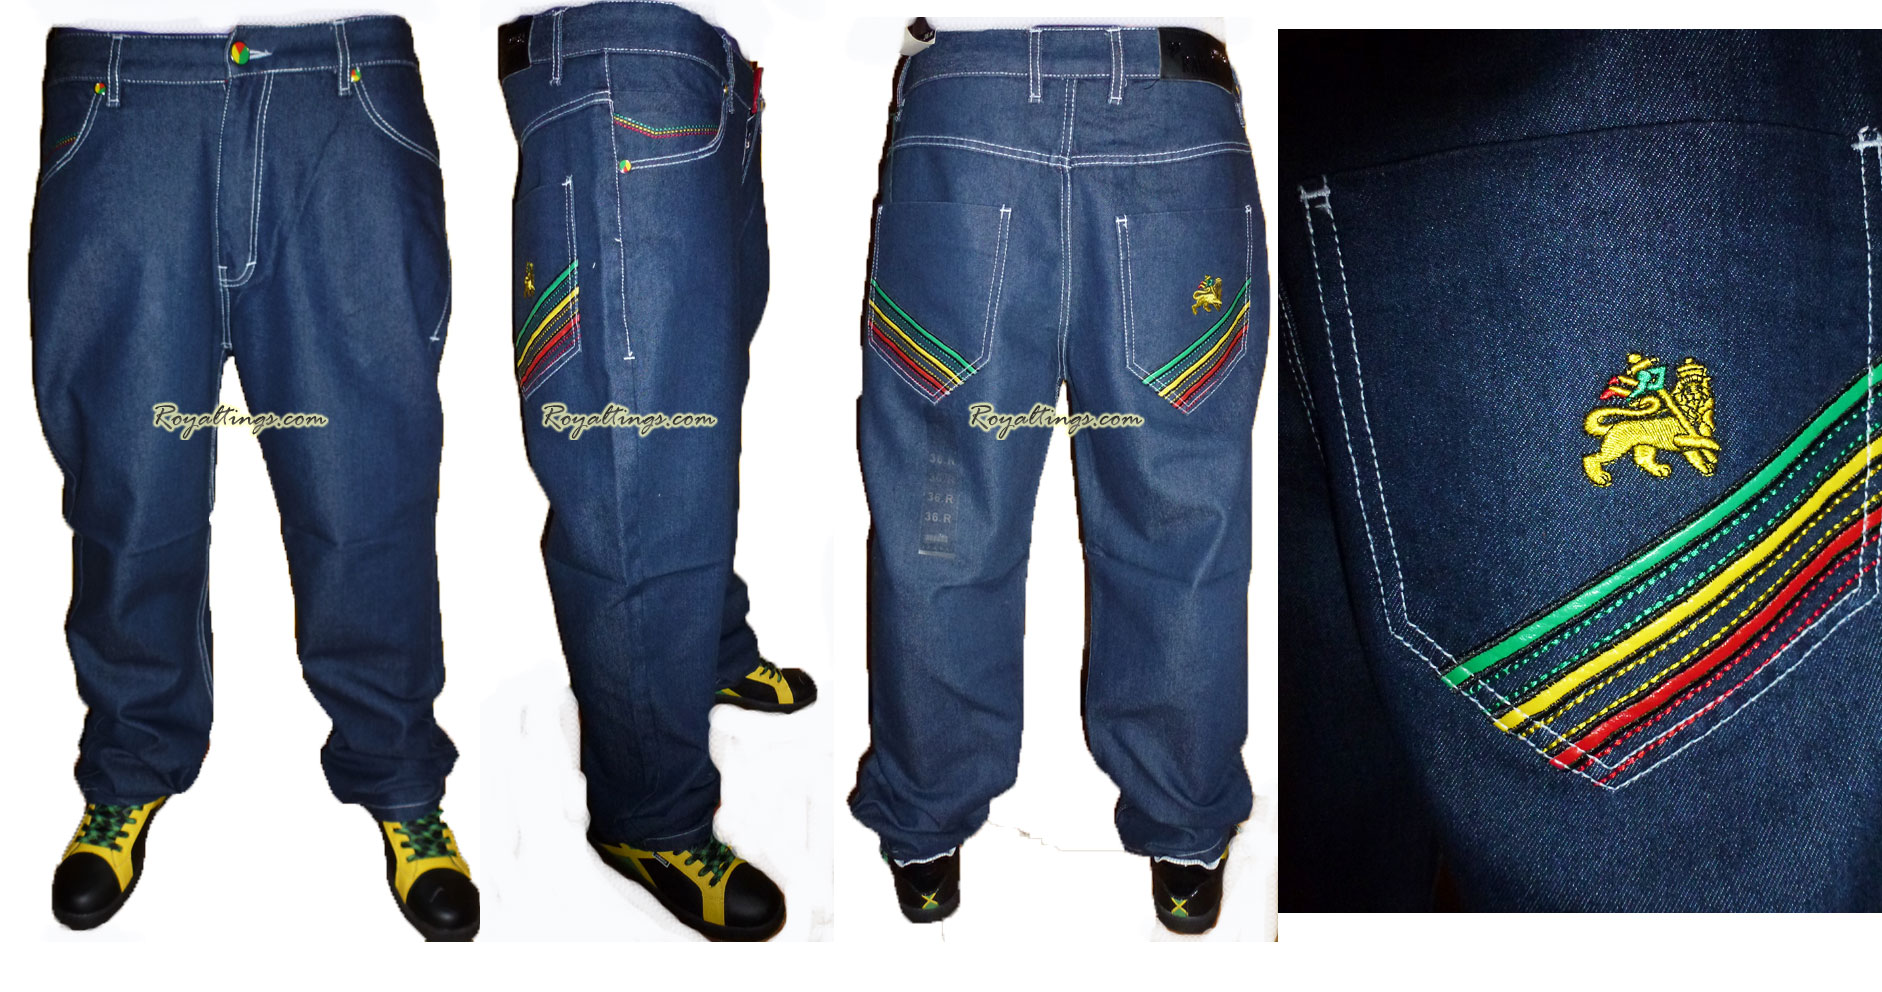 Baggy Jean Rasta Lion of judah 6